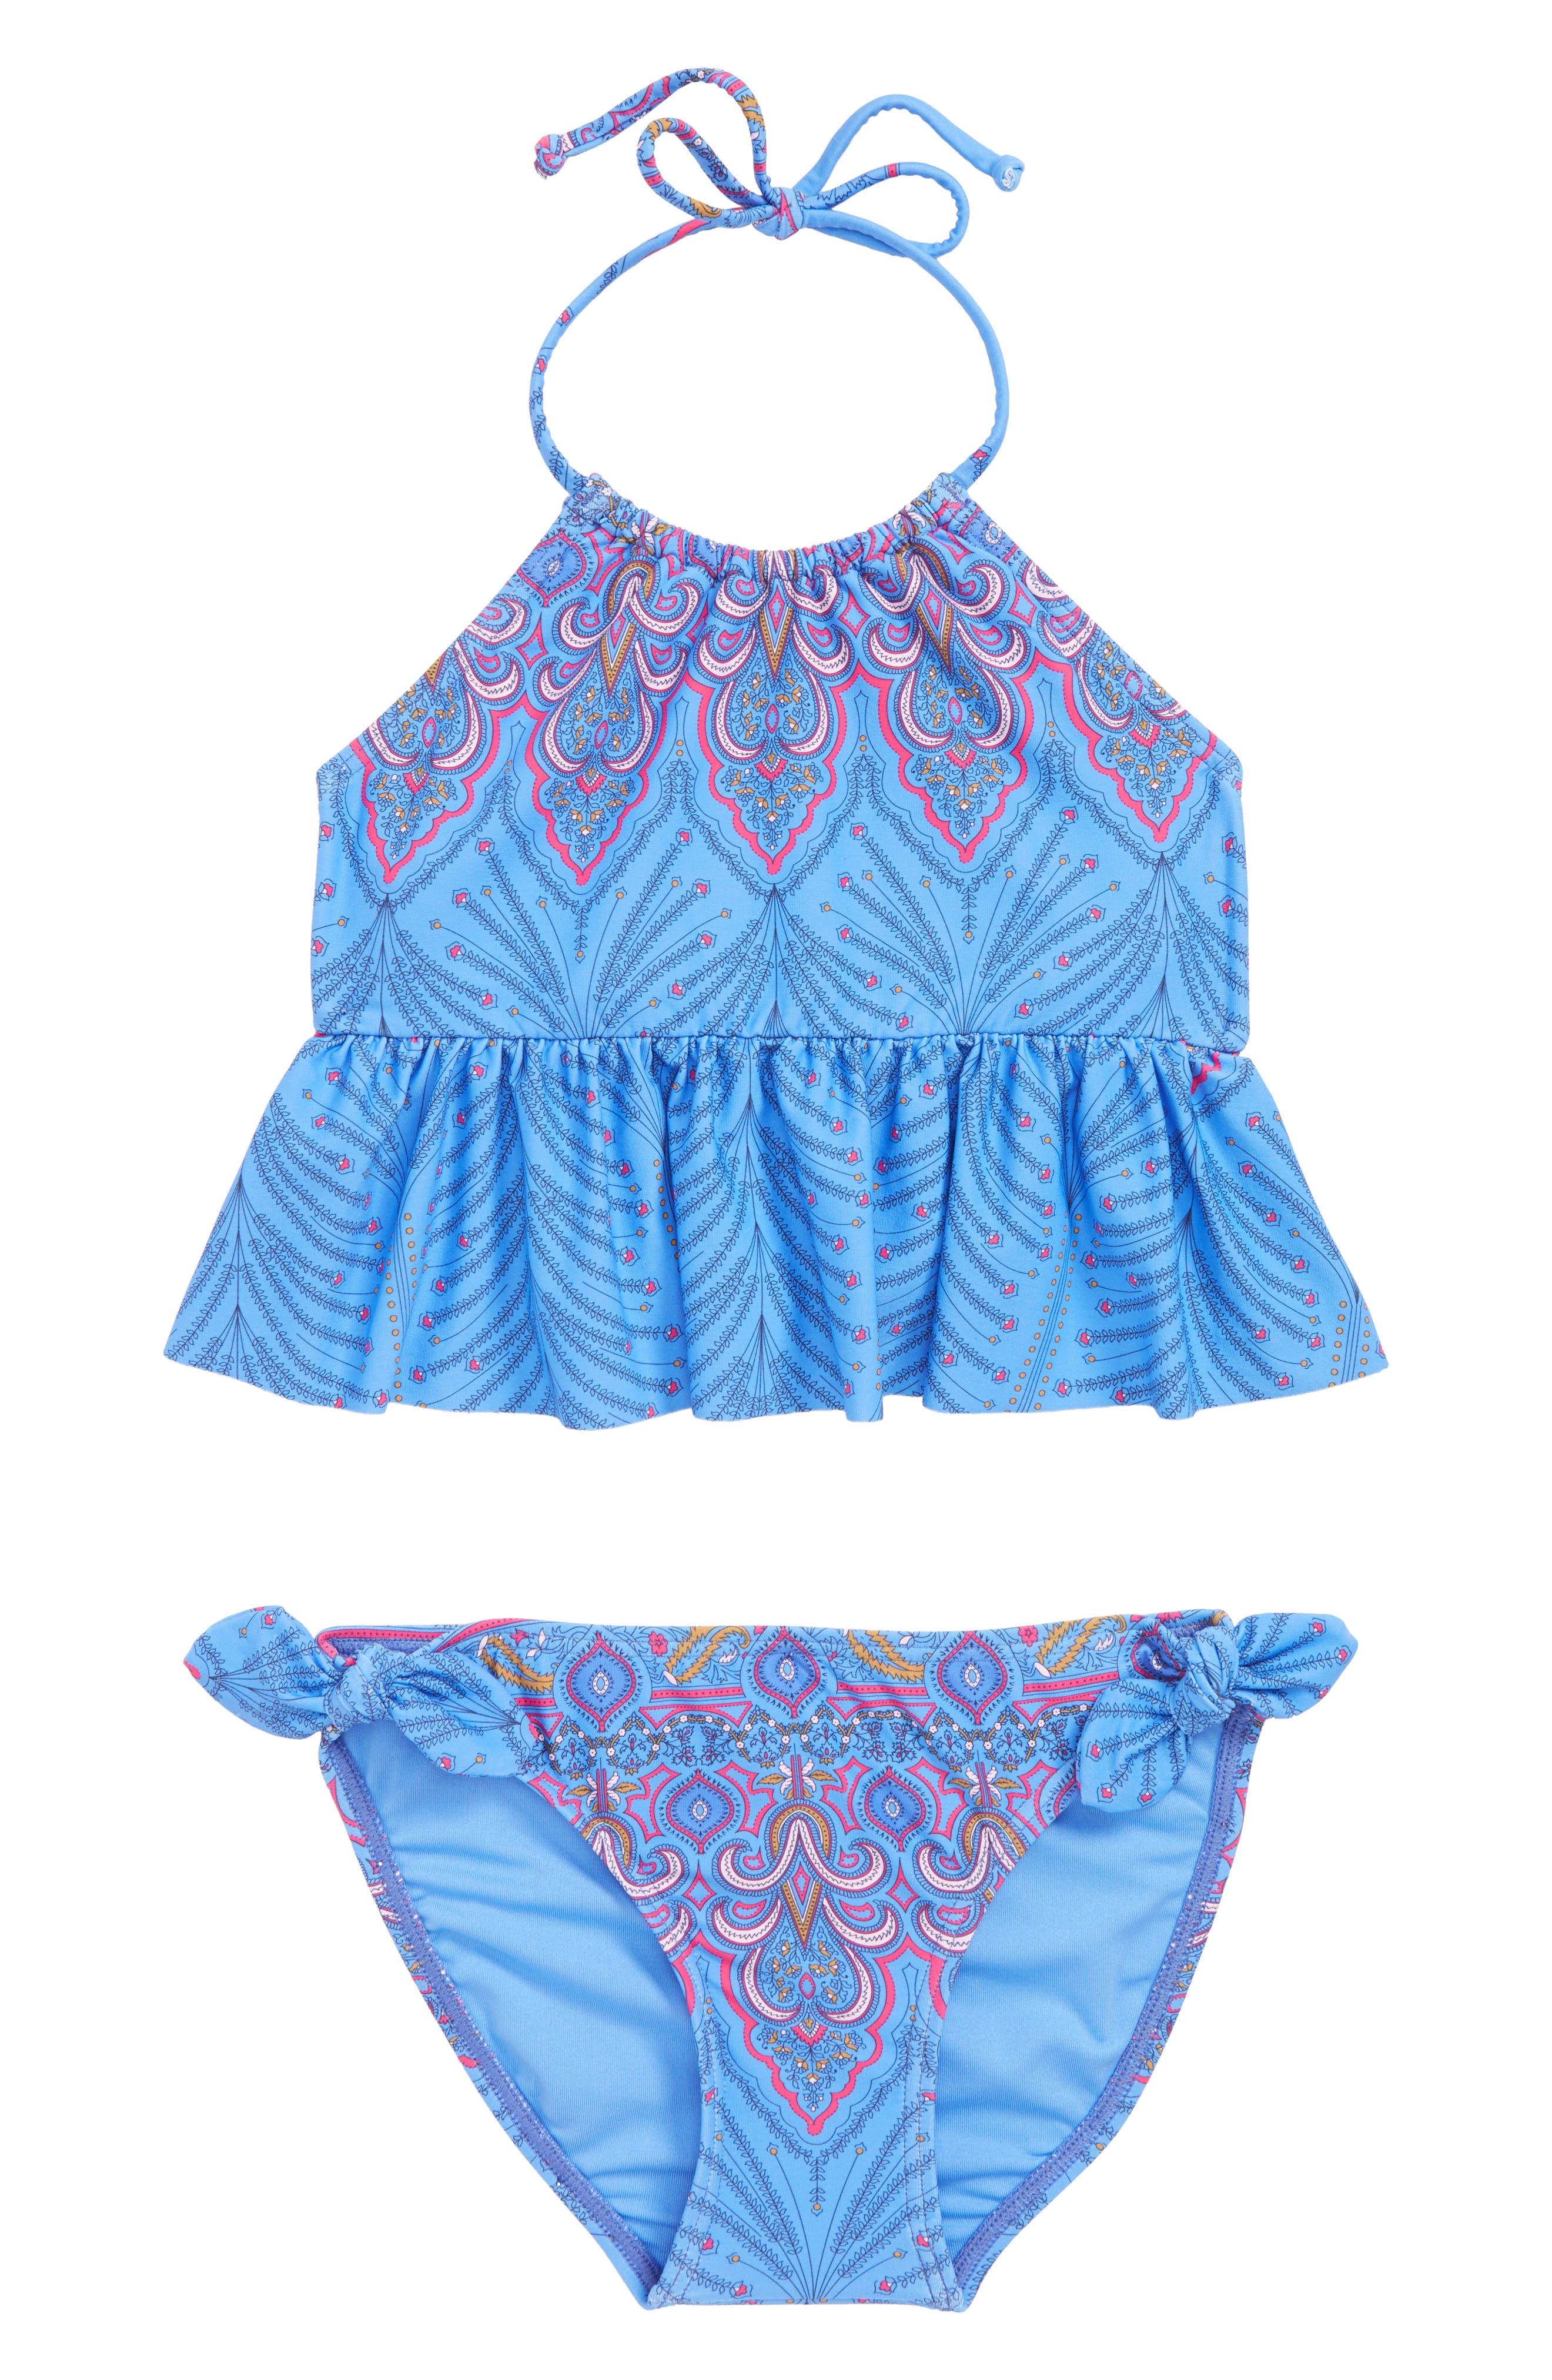 Evie Tankini Two-Piece Swimsuit,                             Main thumbnail 1, color,                             435